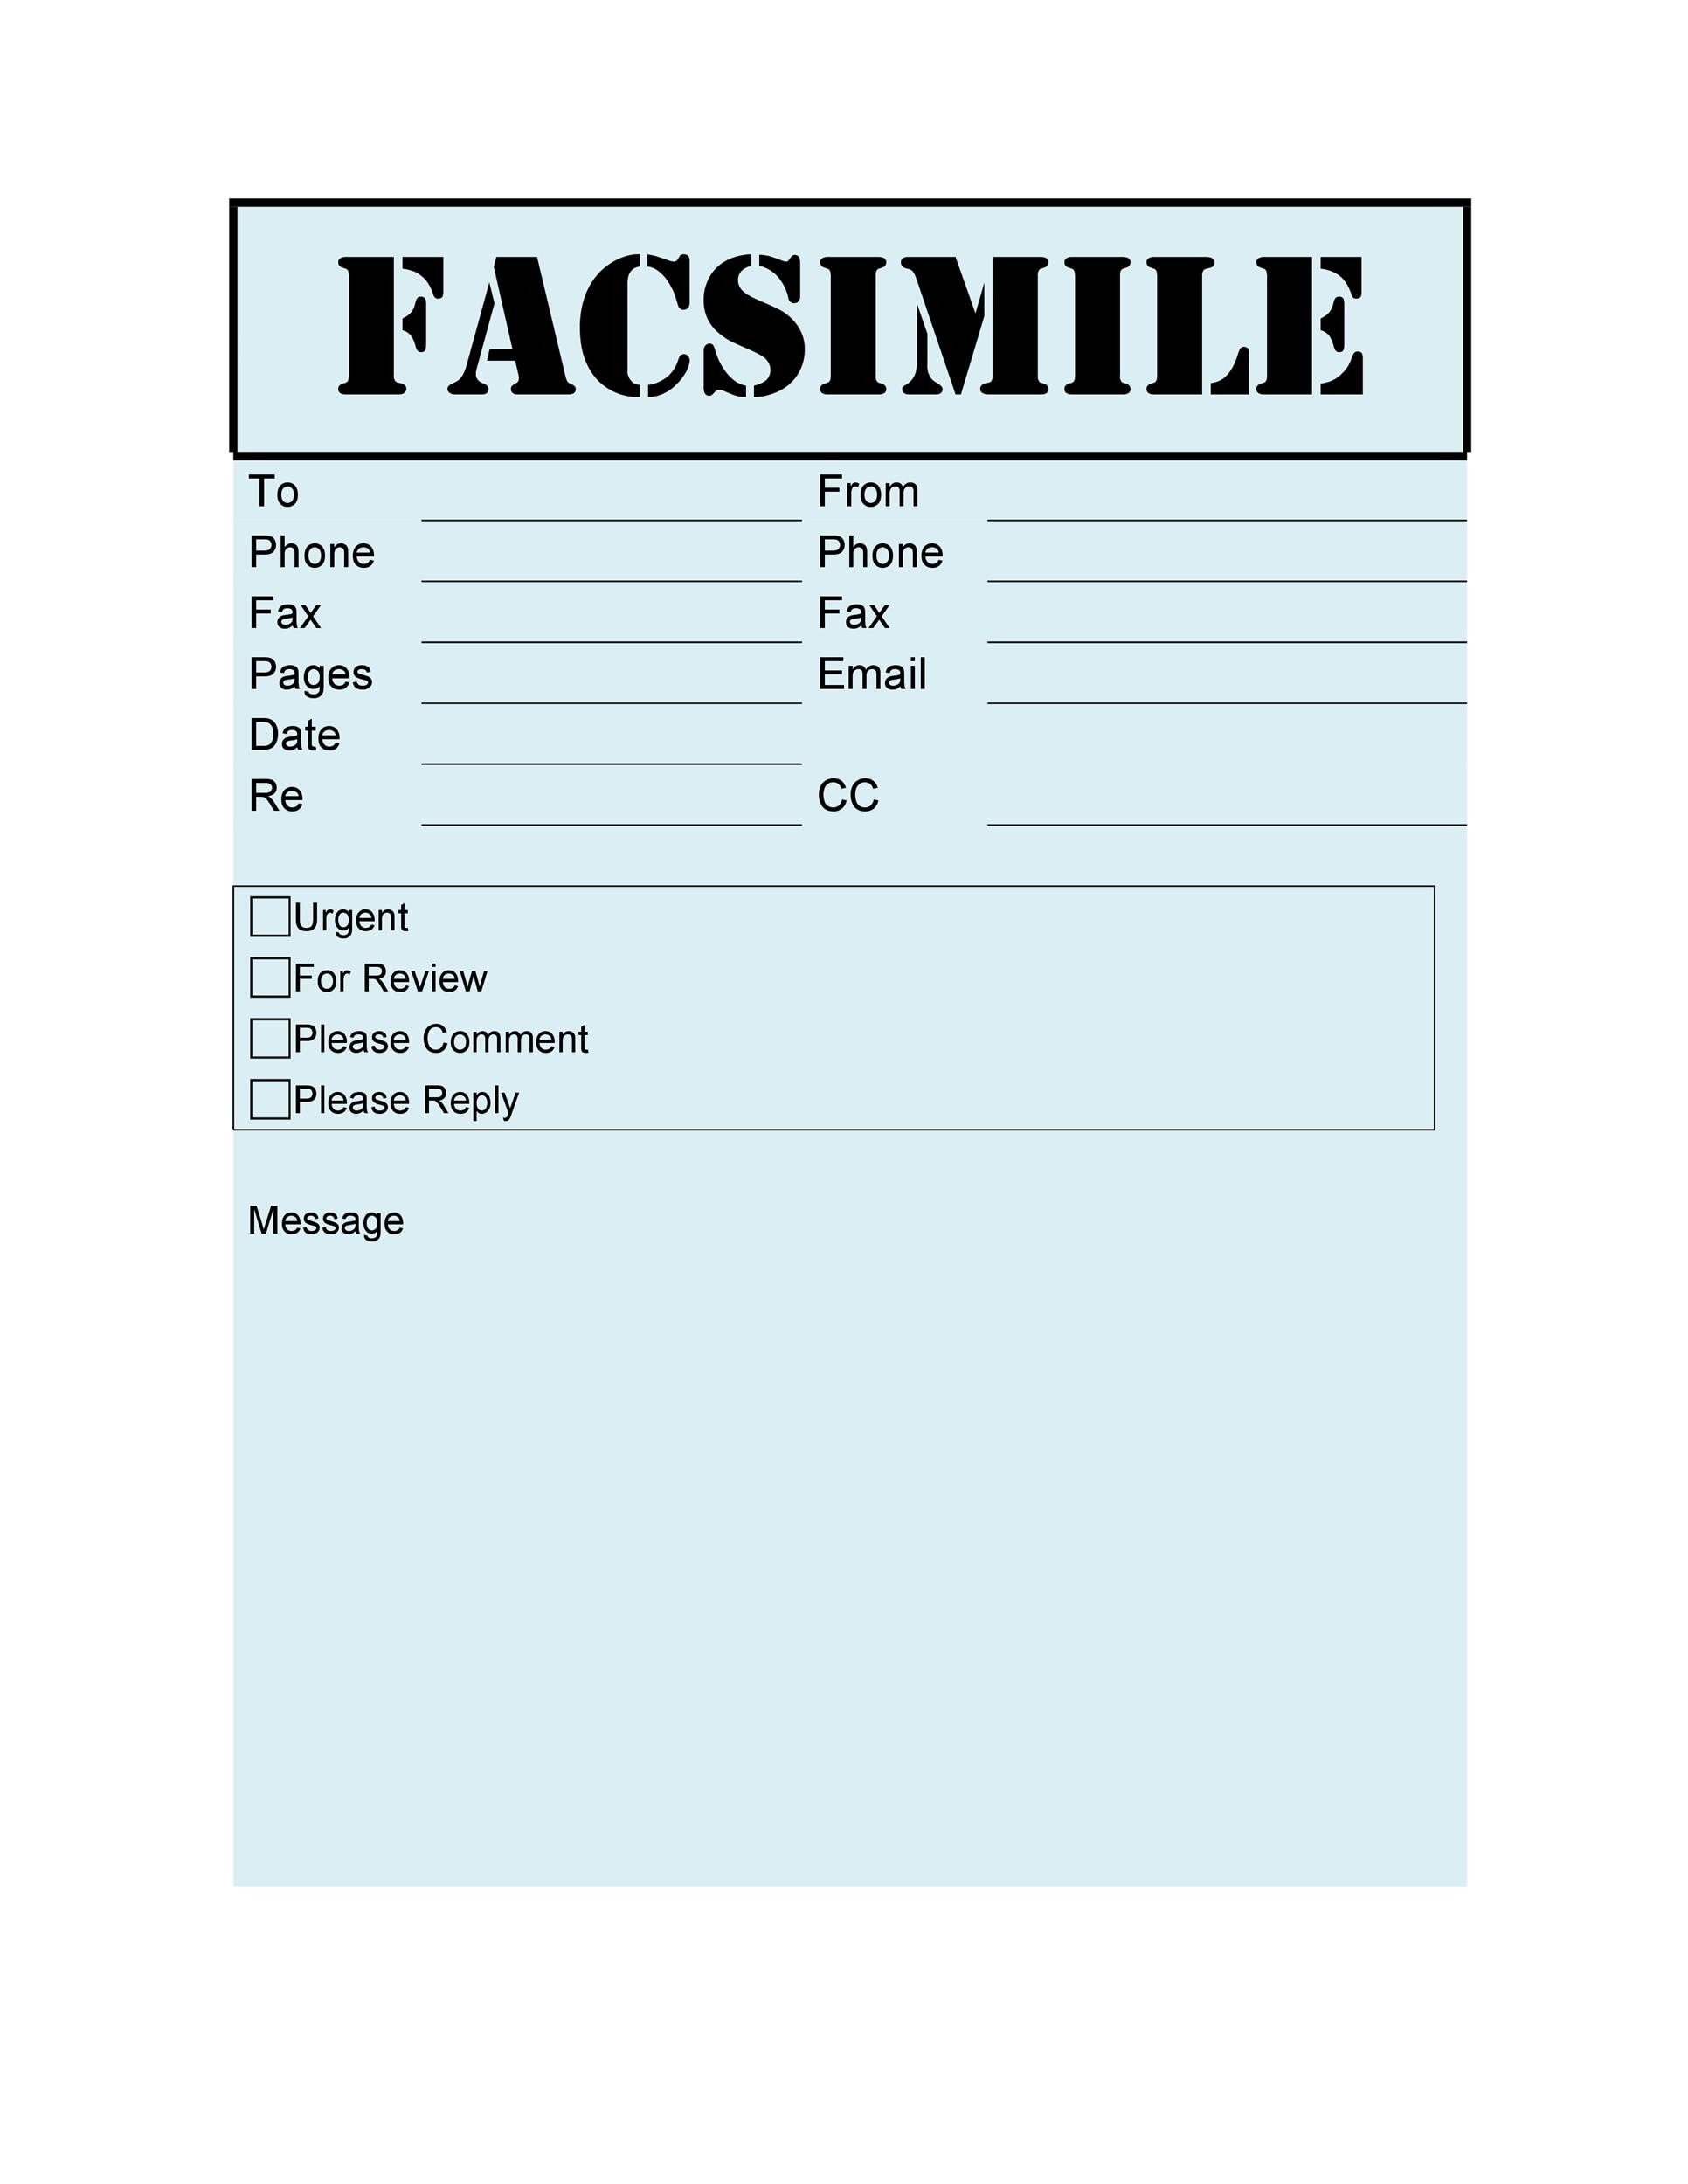 Fax Cover Sheet Template 34